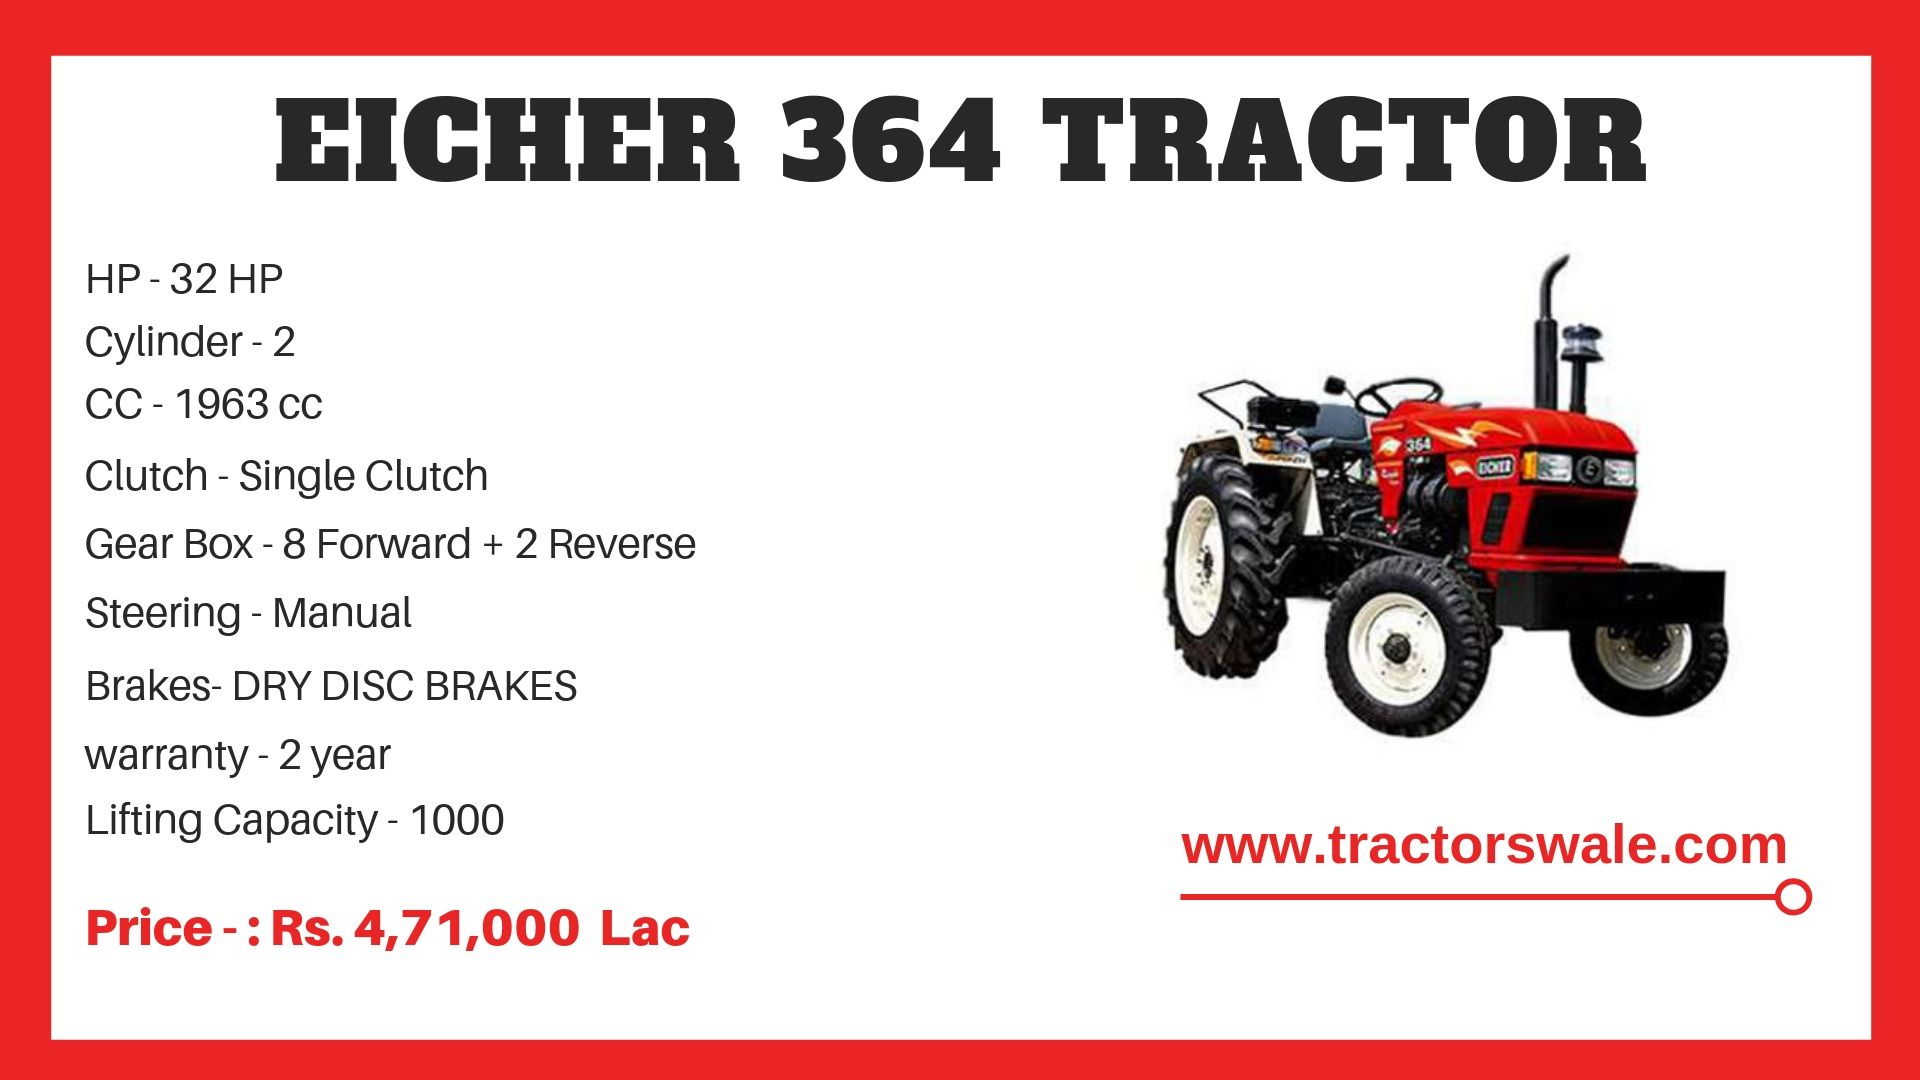 Eicher Tractor 364 Specifications